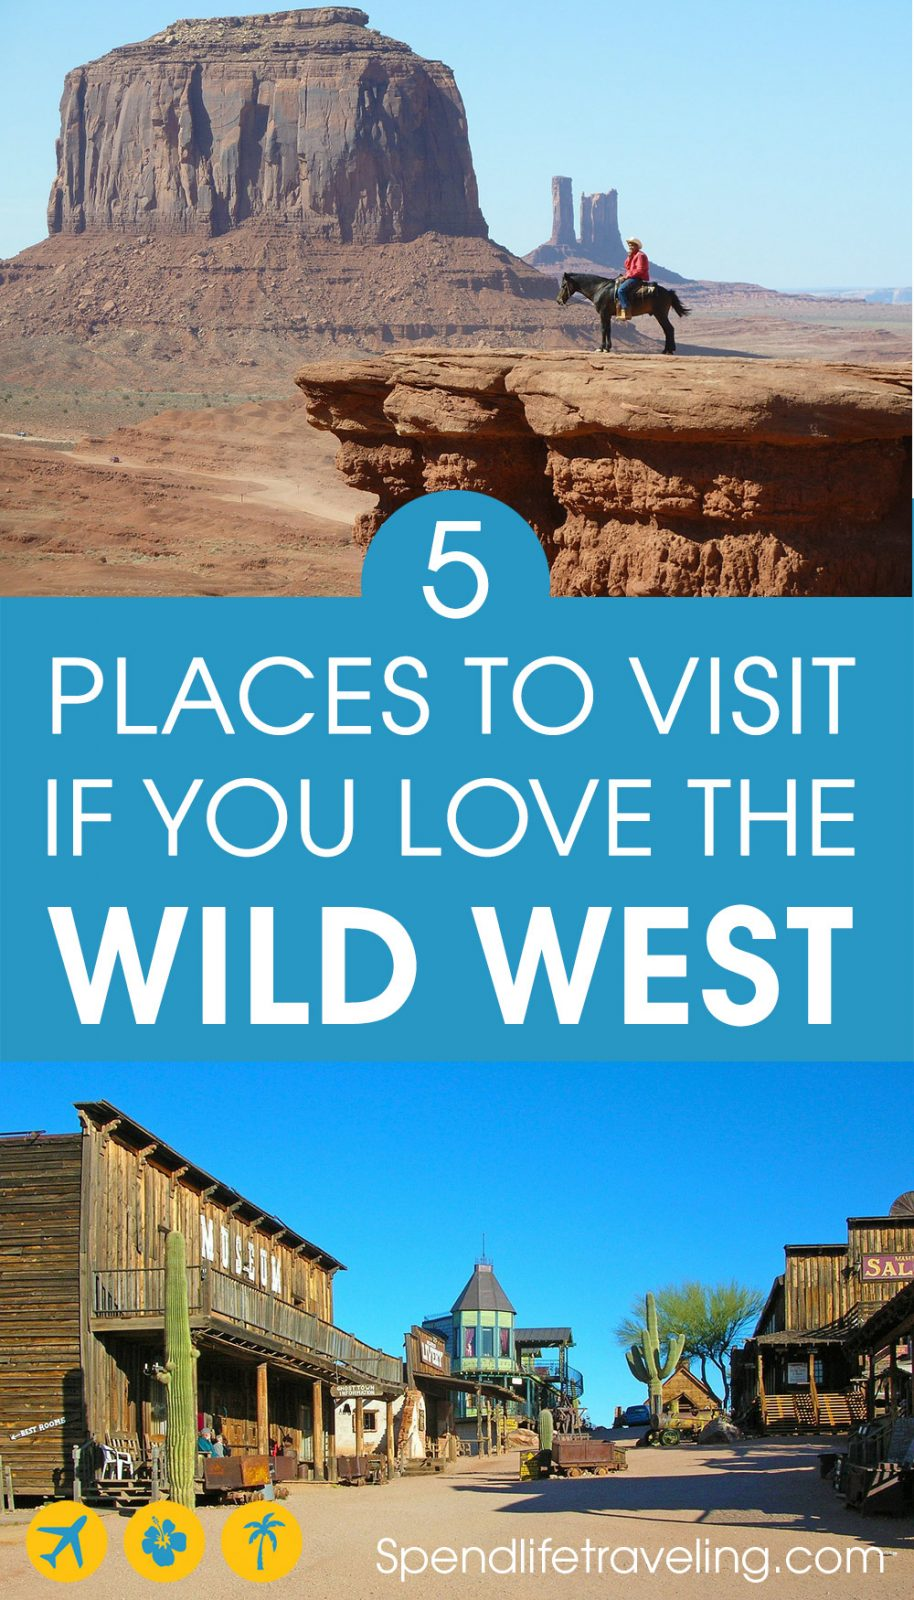 5 Places You Should Visit in The USA if You Love The Wild West.